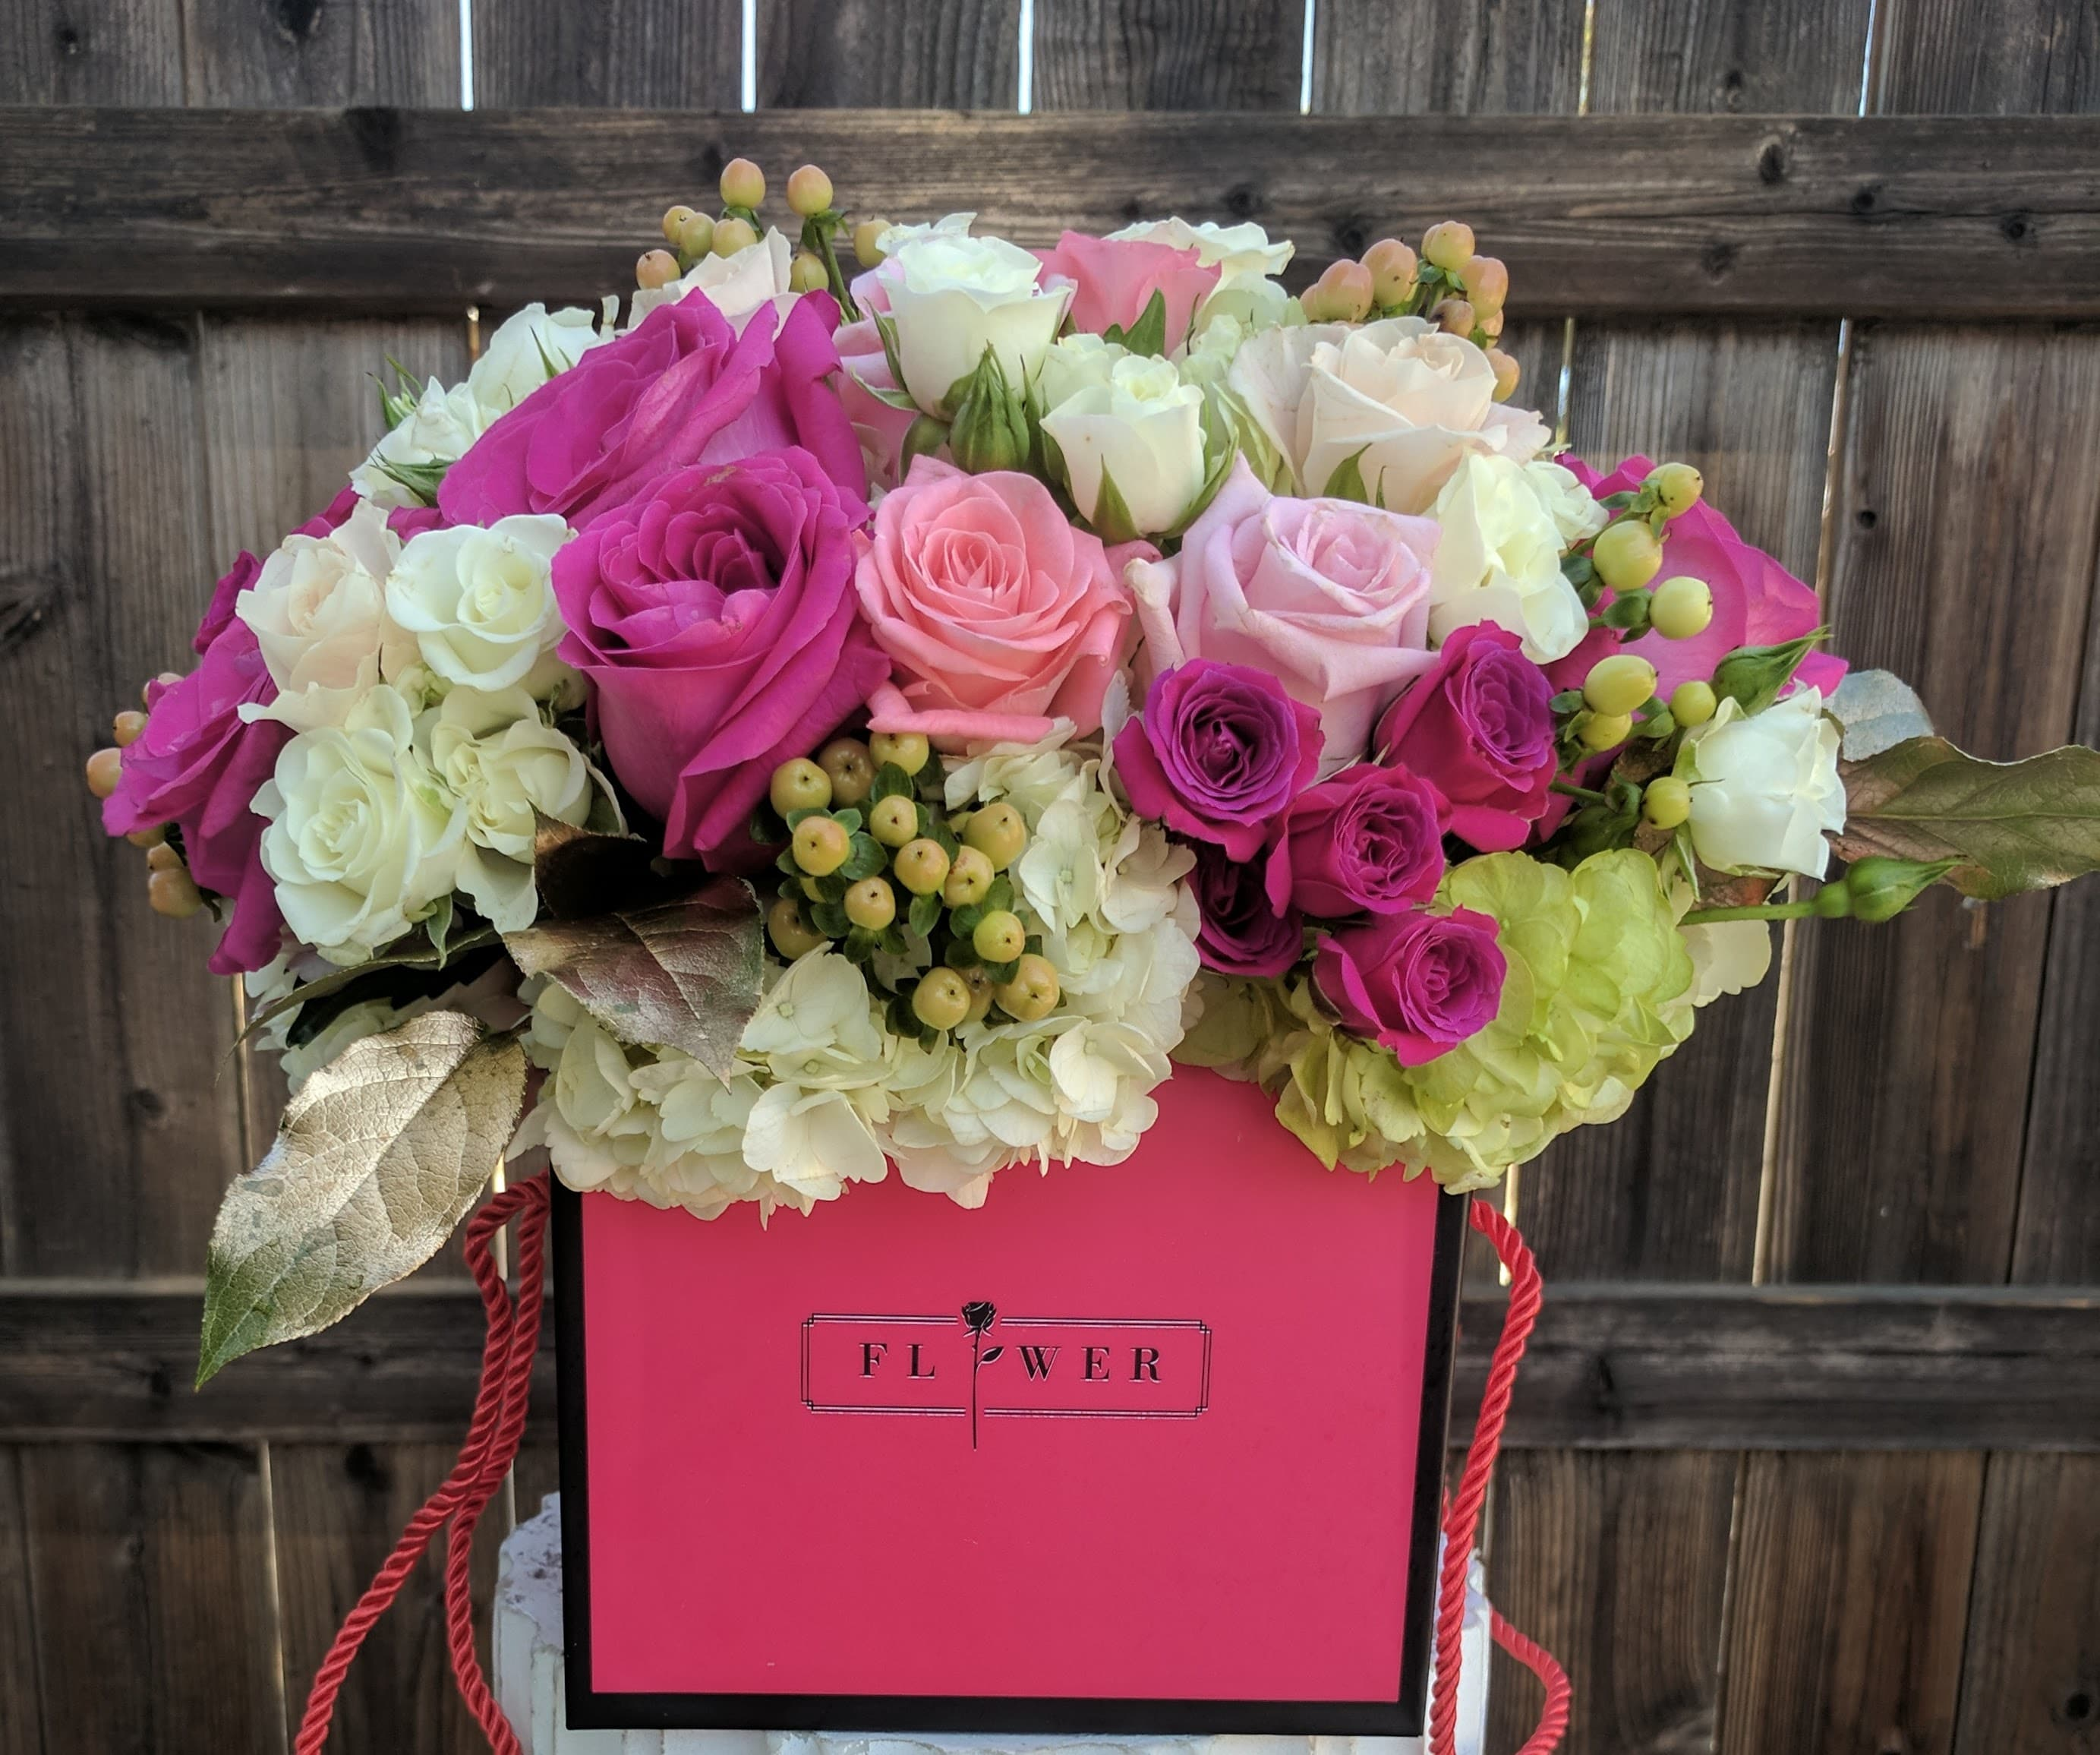 Fabulous Flower Box Let Us Pick The Prettiest One For Your Special Order